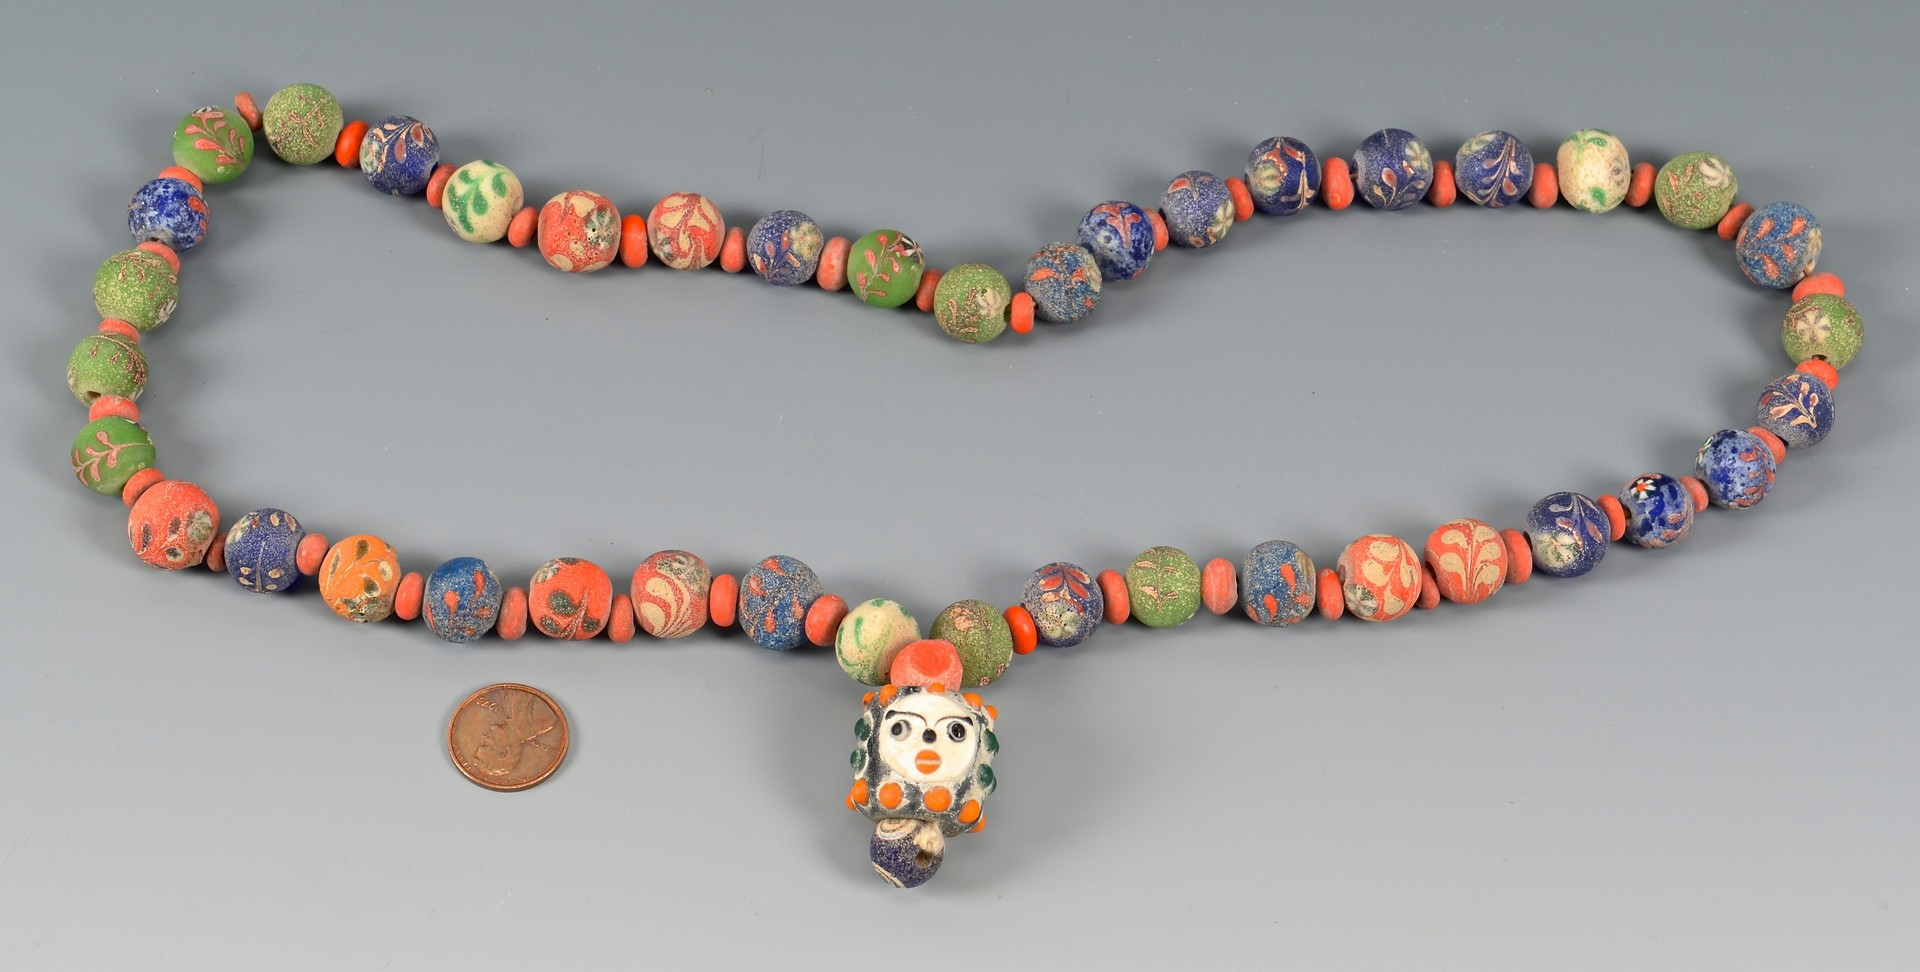 Lot 4010147: Ancient Middle Eastern Glass Beads